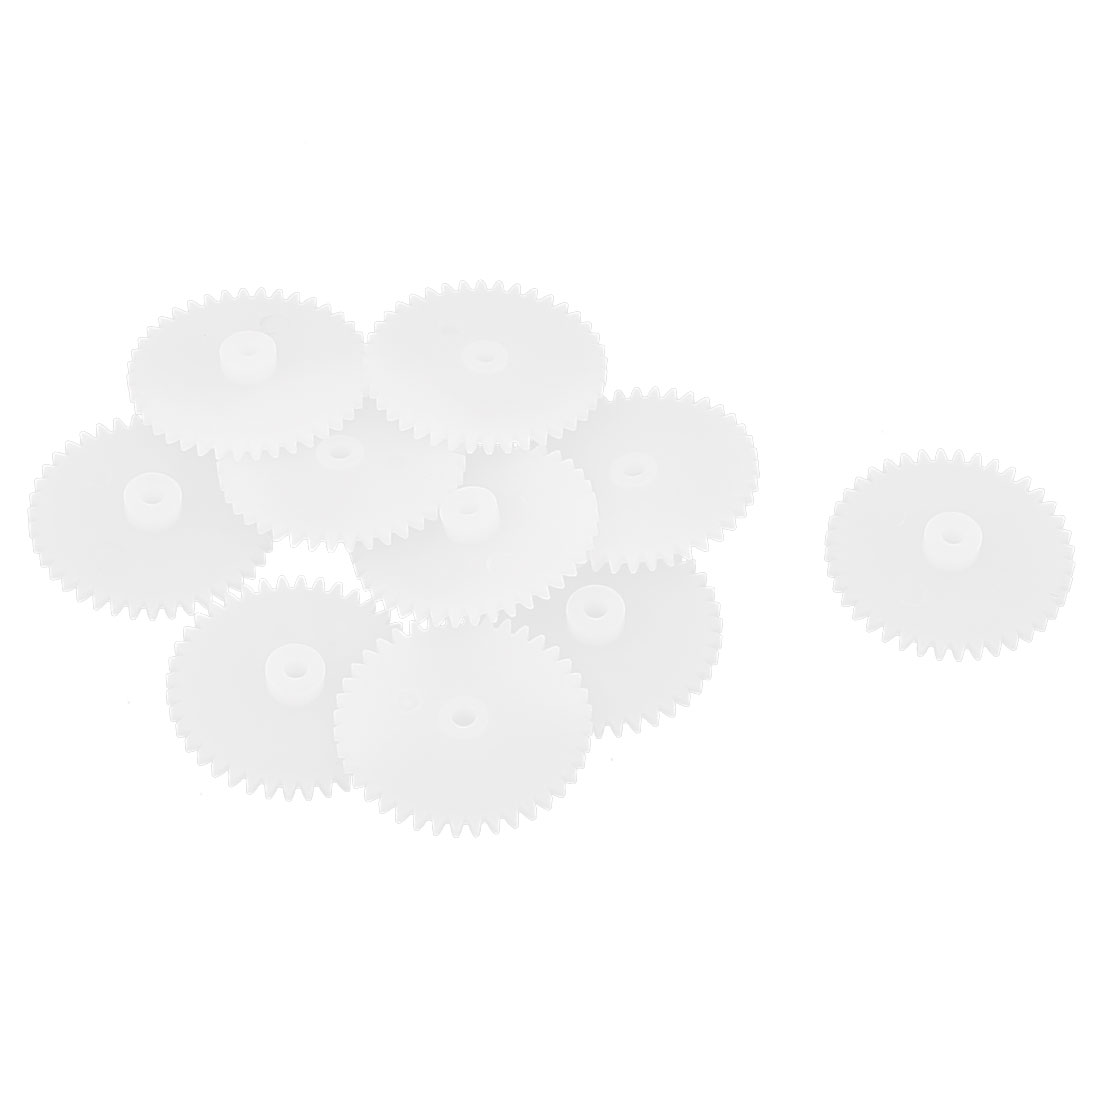 10Pcs 40 Teeth 0.5 Modulus Plastic Single Reduction Motor Gear for RC Airplane by